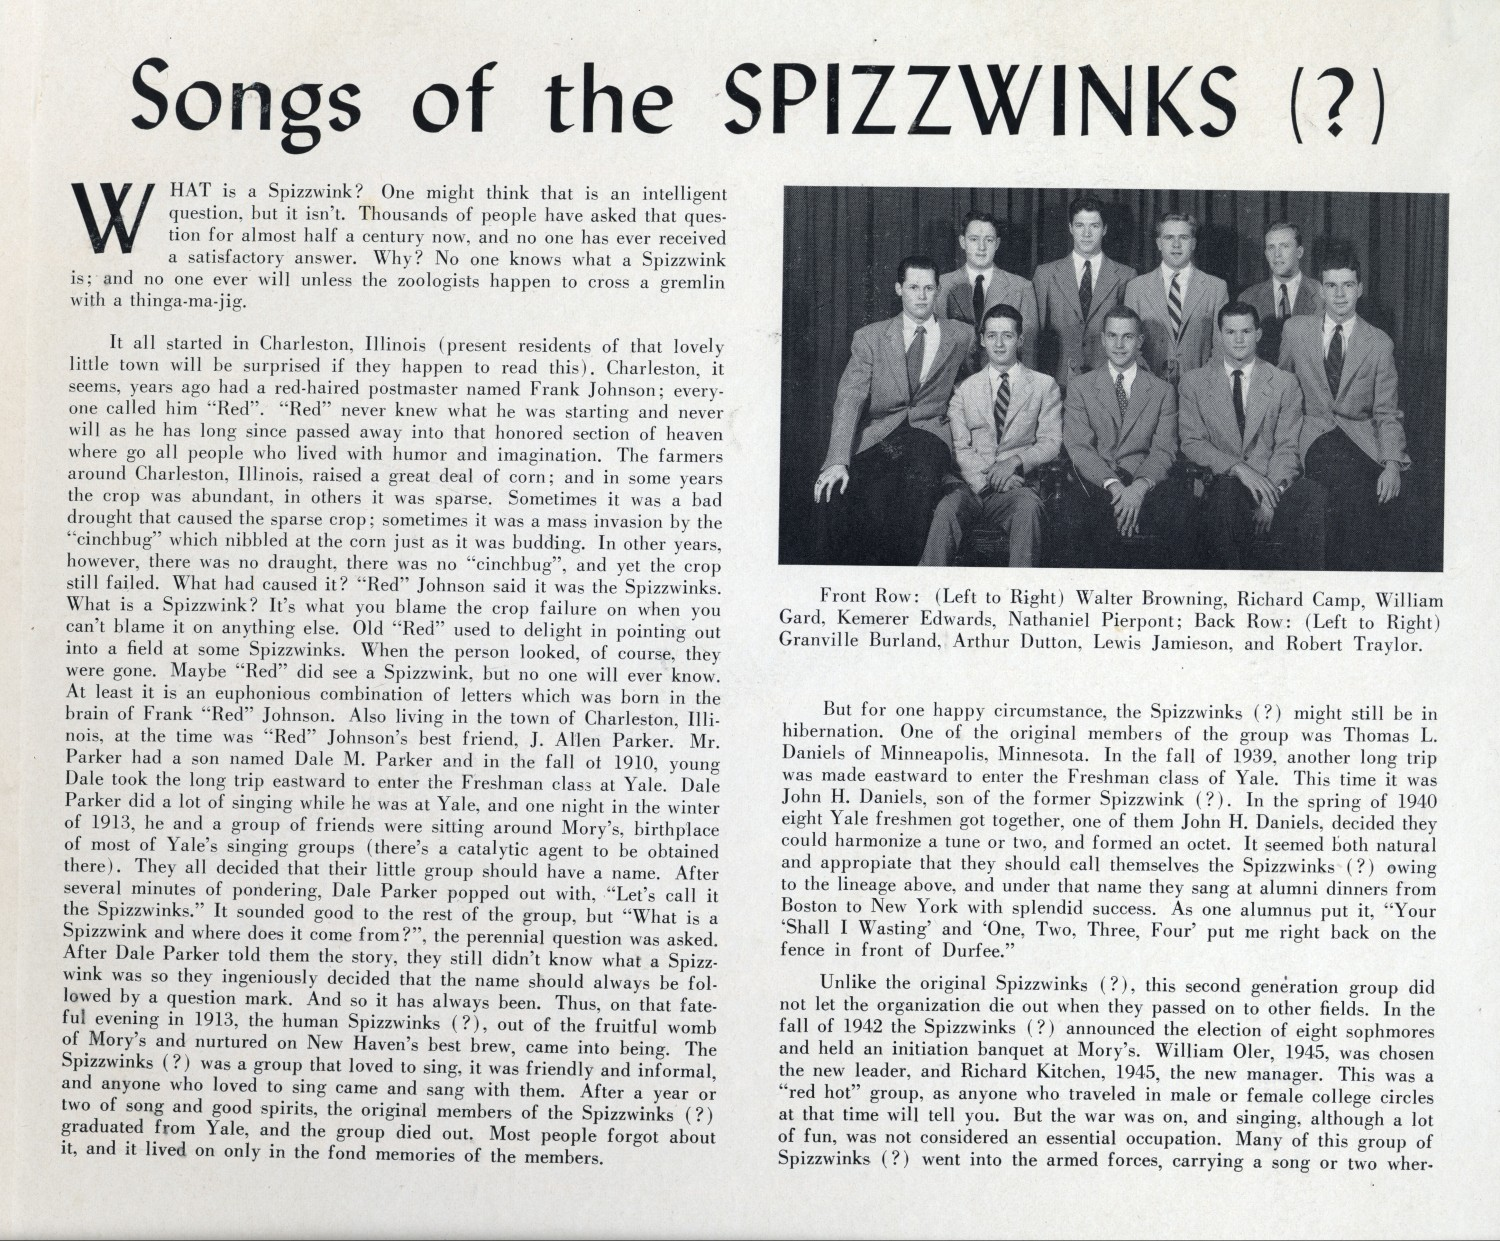 1948 Songs of the Spizzwinks - inside cover left